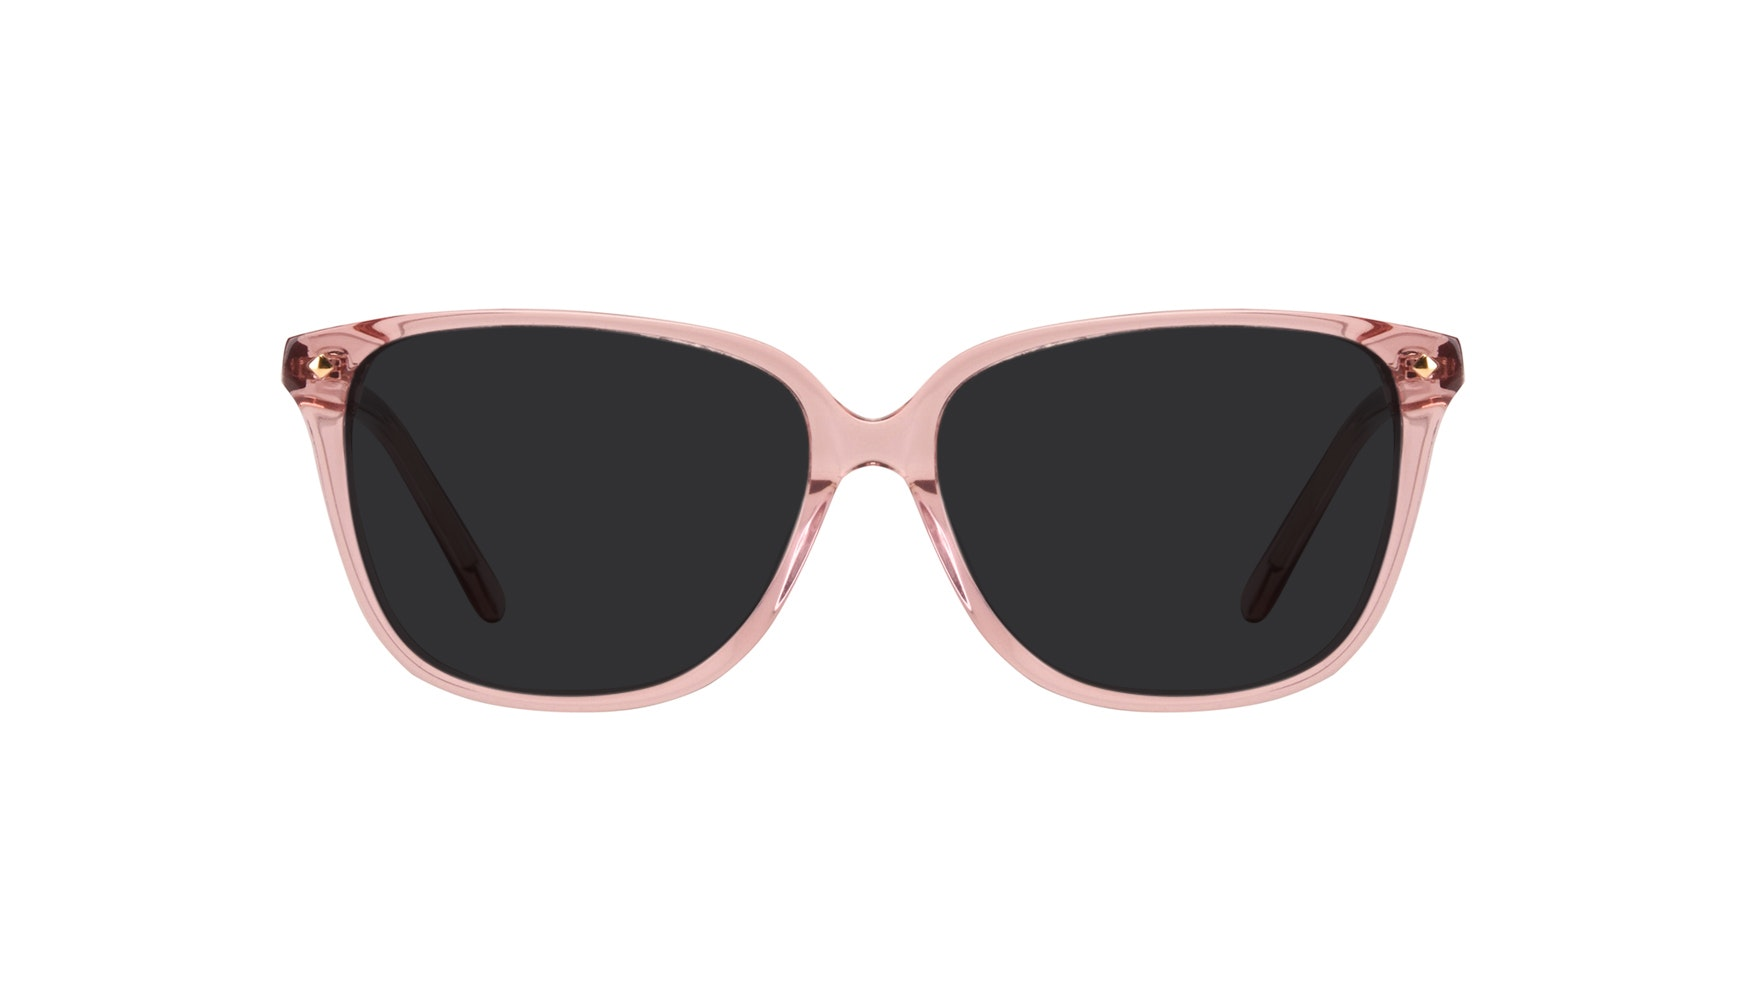 Affordable Fashion Glasses Rectangle Square Sunglasses Women Muse Rose Front